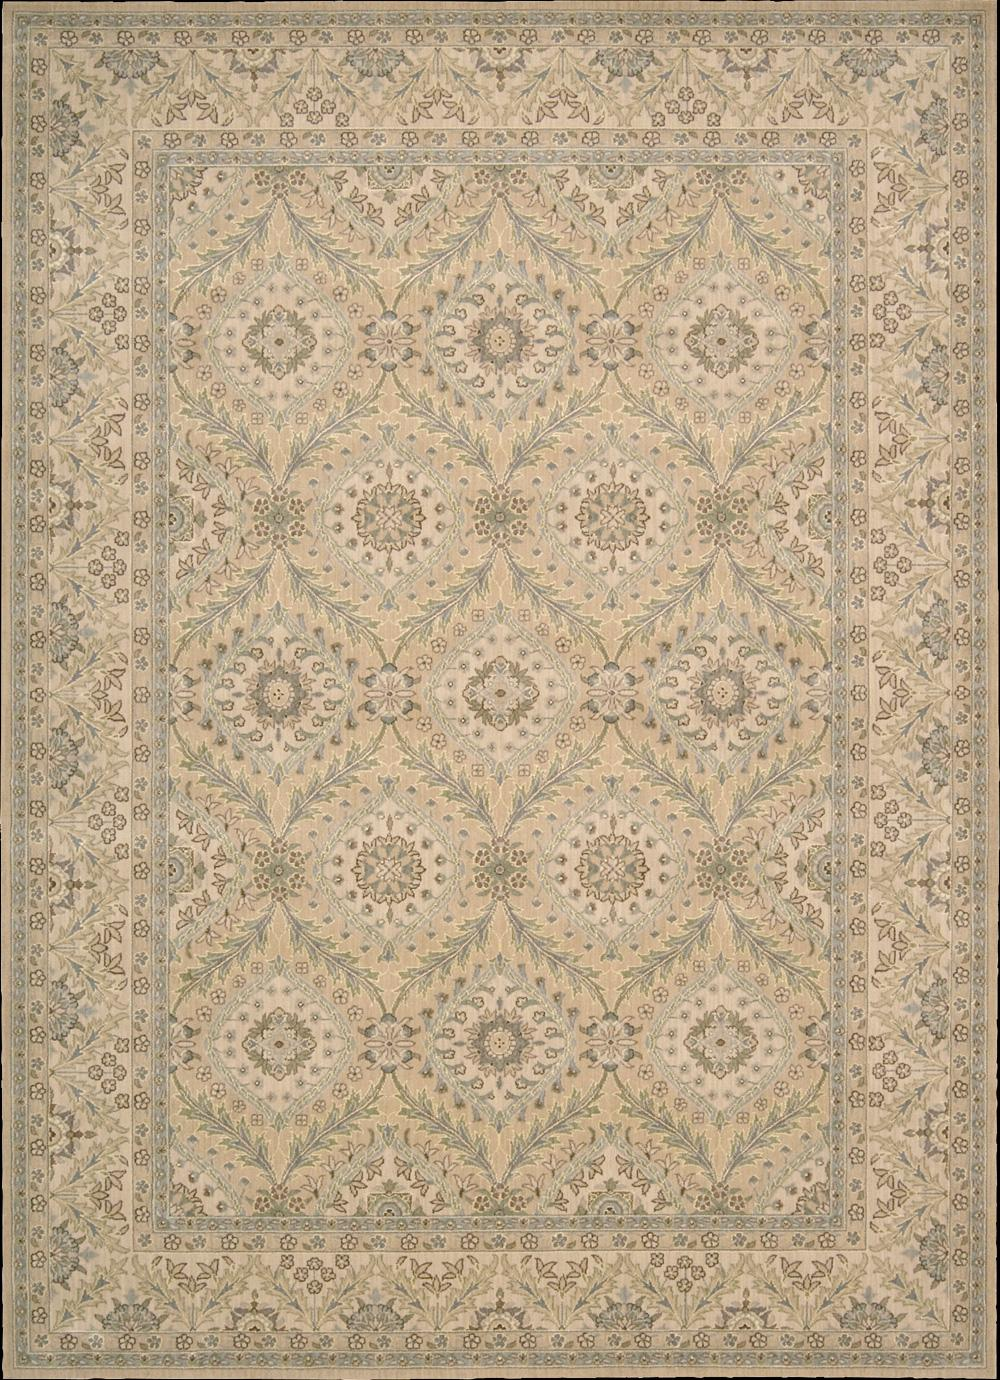 "Nourison Persian Empire Area Rug 2' x 2'9"" - Item Number: 44103"